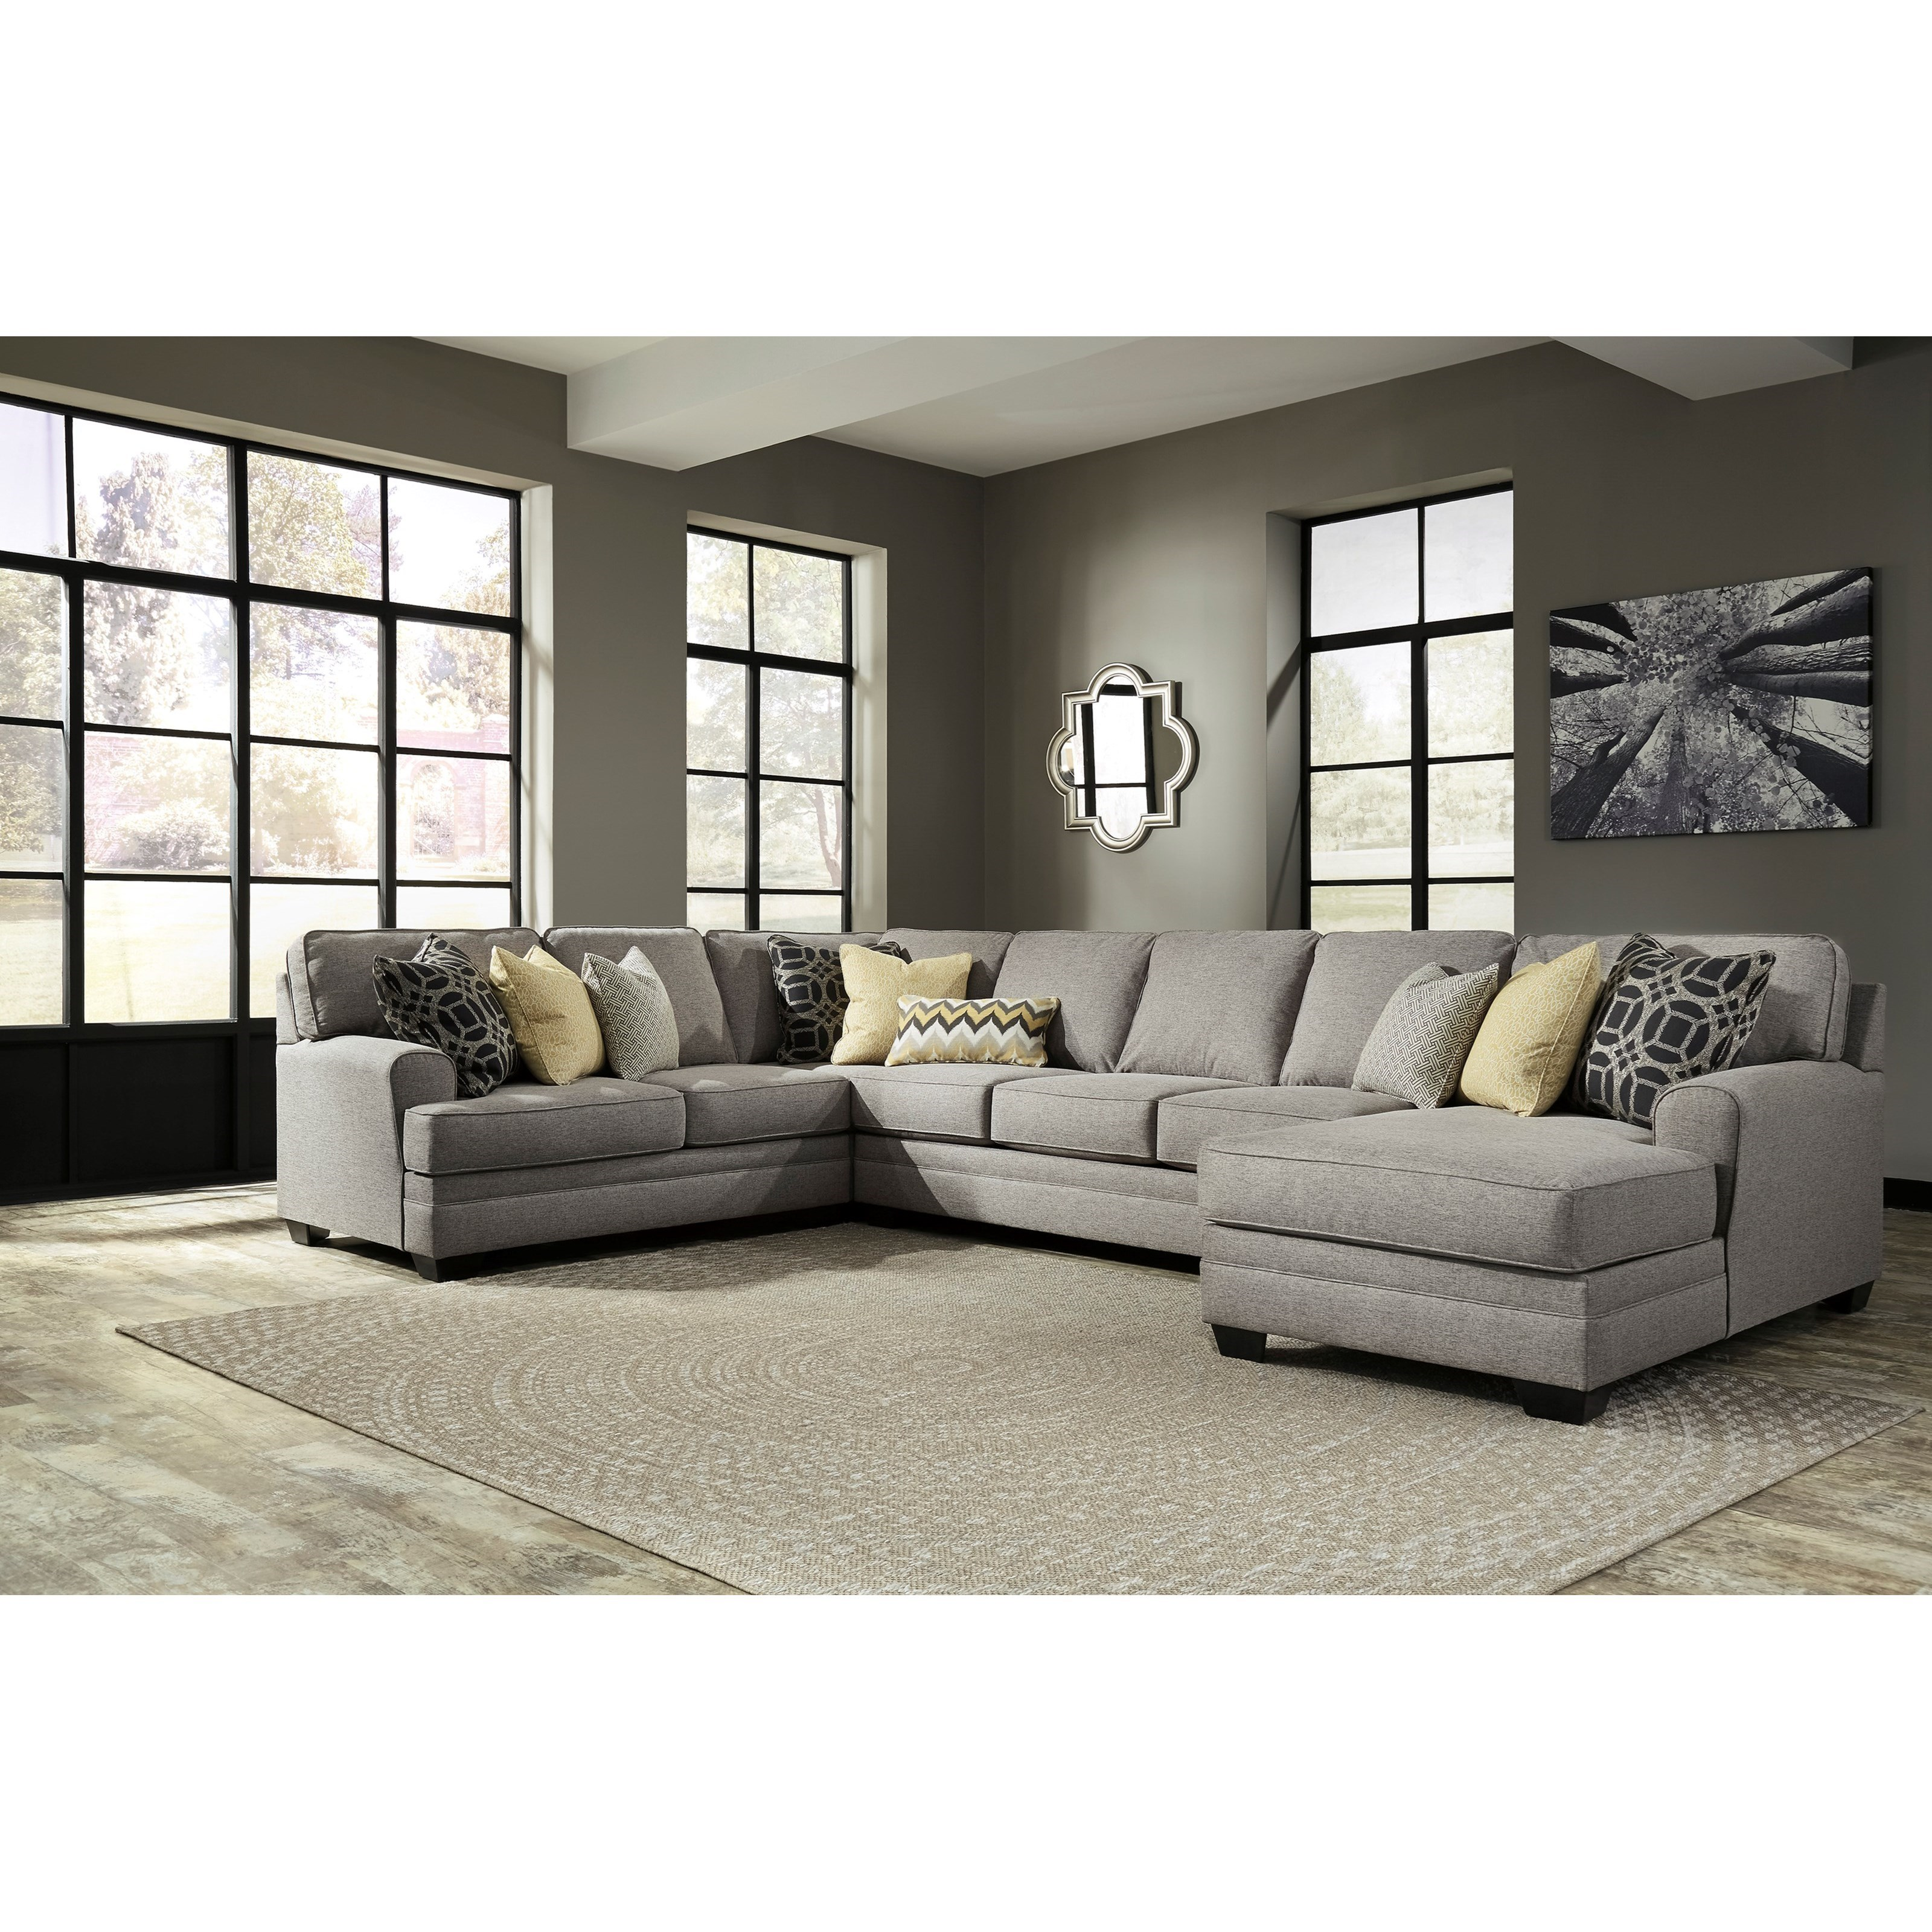 Benchcraft Cresson Contemporary 4 Piece Sectional With Chaise U0026 Armless Sofa